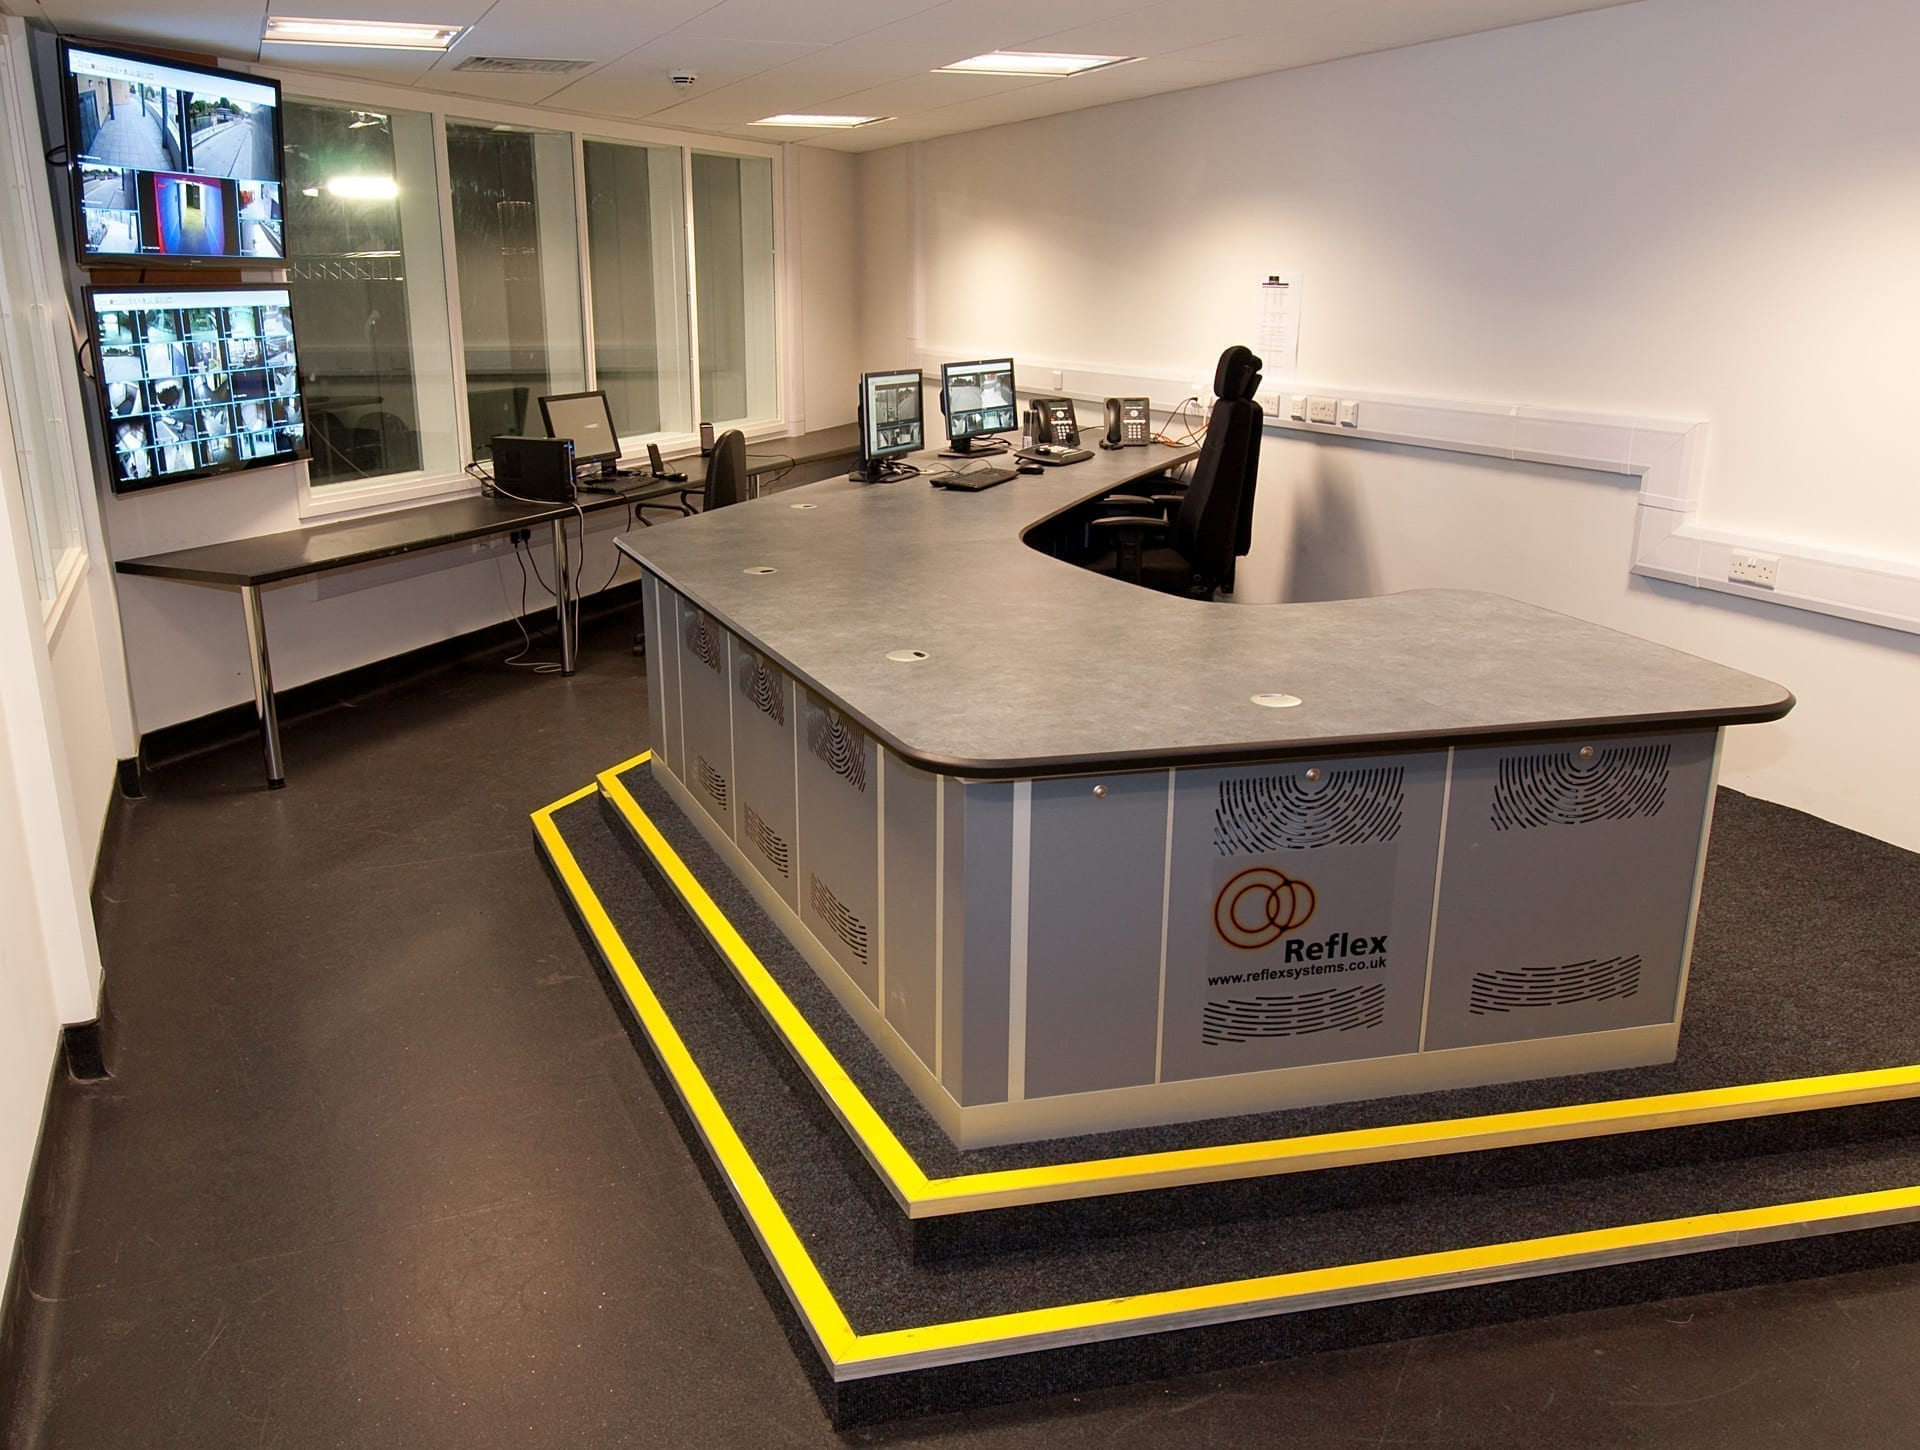 Control Room Furniture Property security consoles and control room furniture | thinking space systems